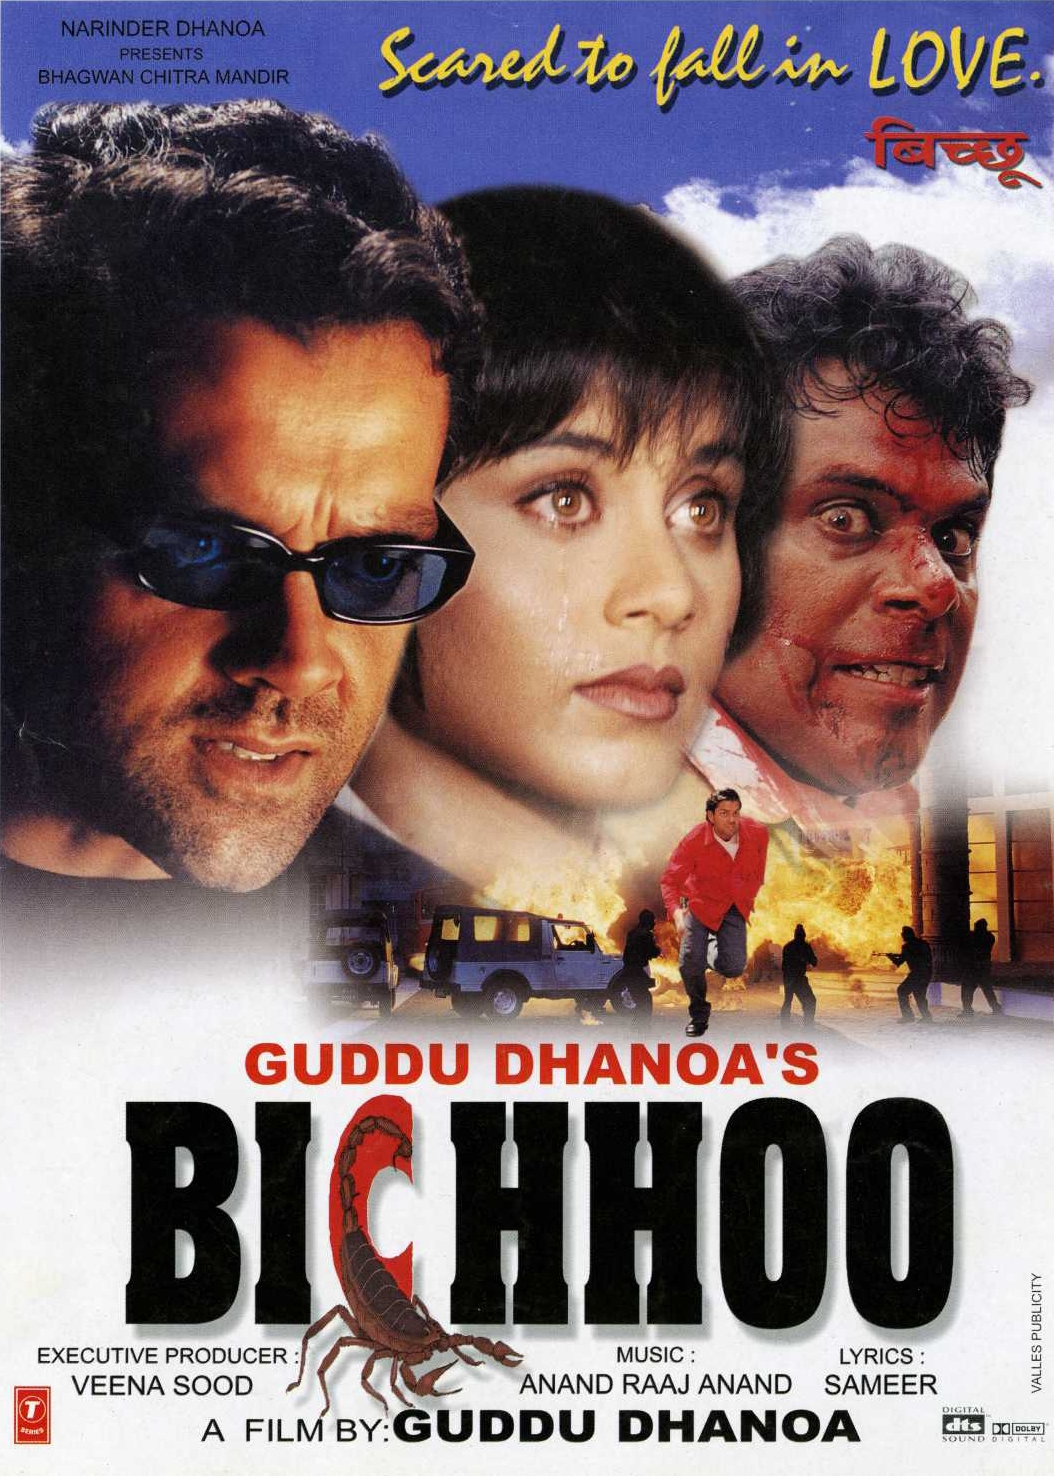 Bichhoo 2000 Hindi 720p HDRip ESubs 1GB Download